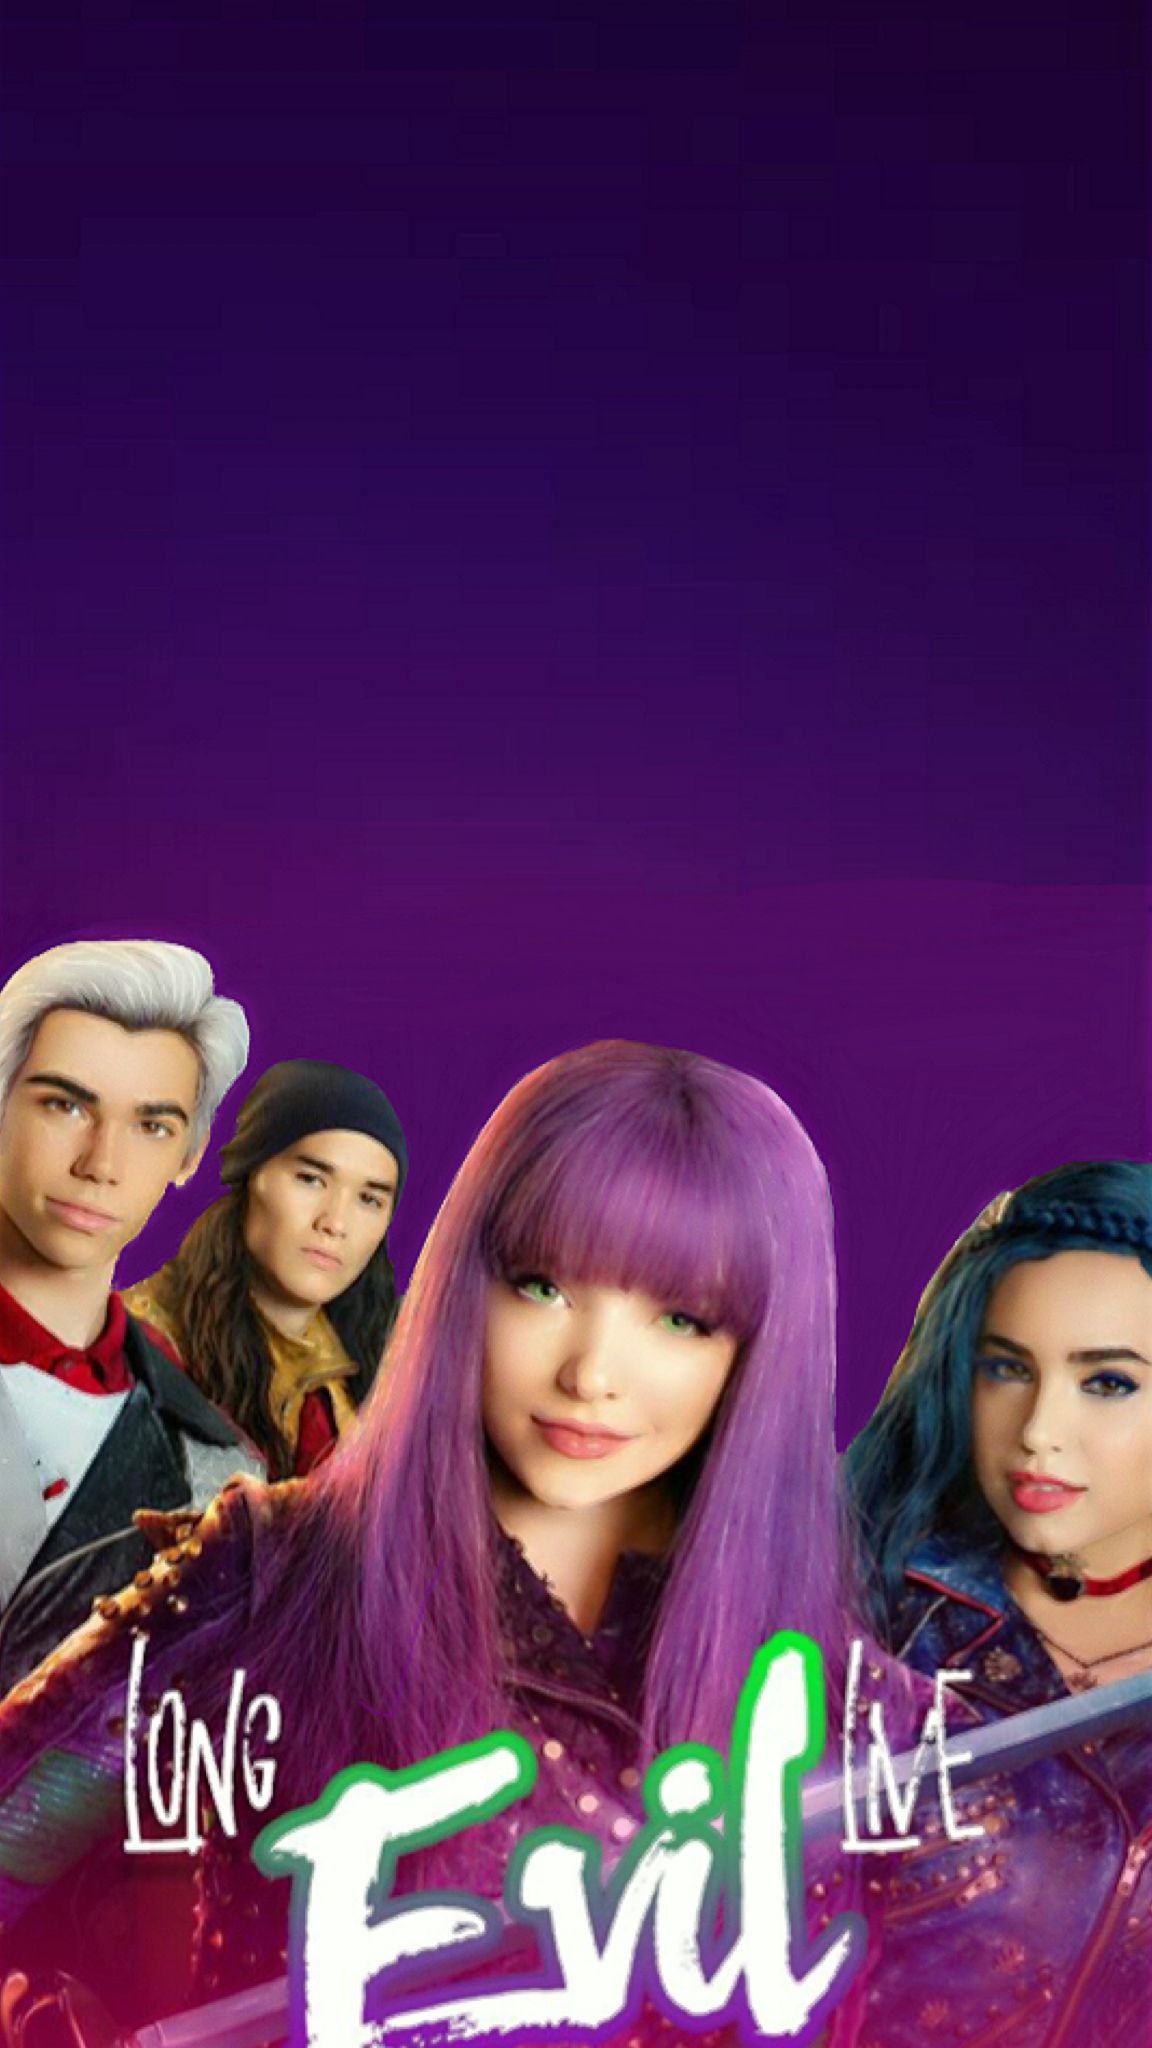 Long Live Havin' Some Fun rather Descendants 2 wallpaper edited by me. ©yayomg (long live evil logo with the cast)